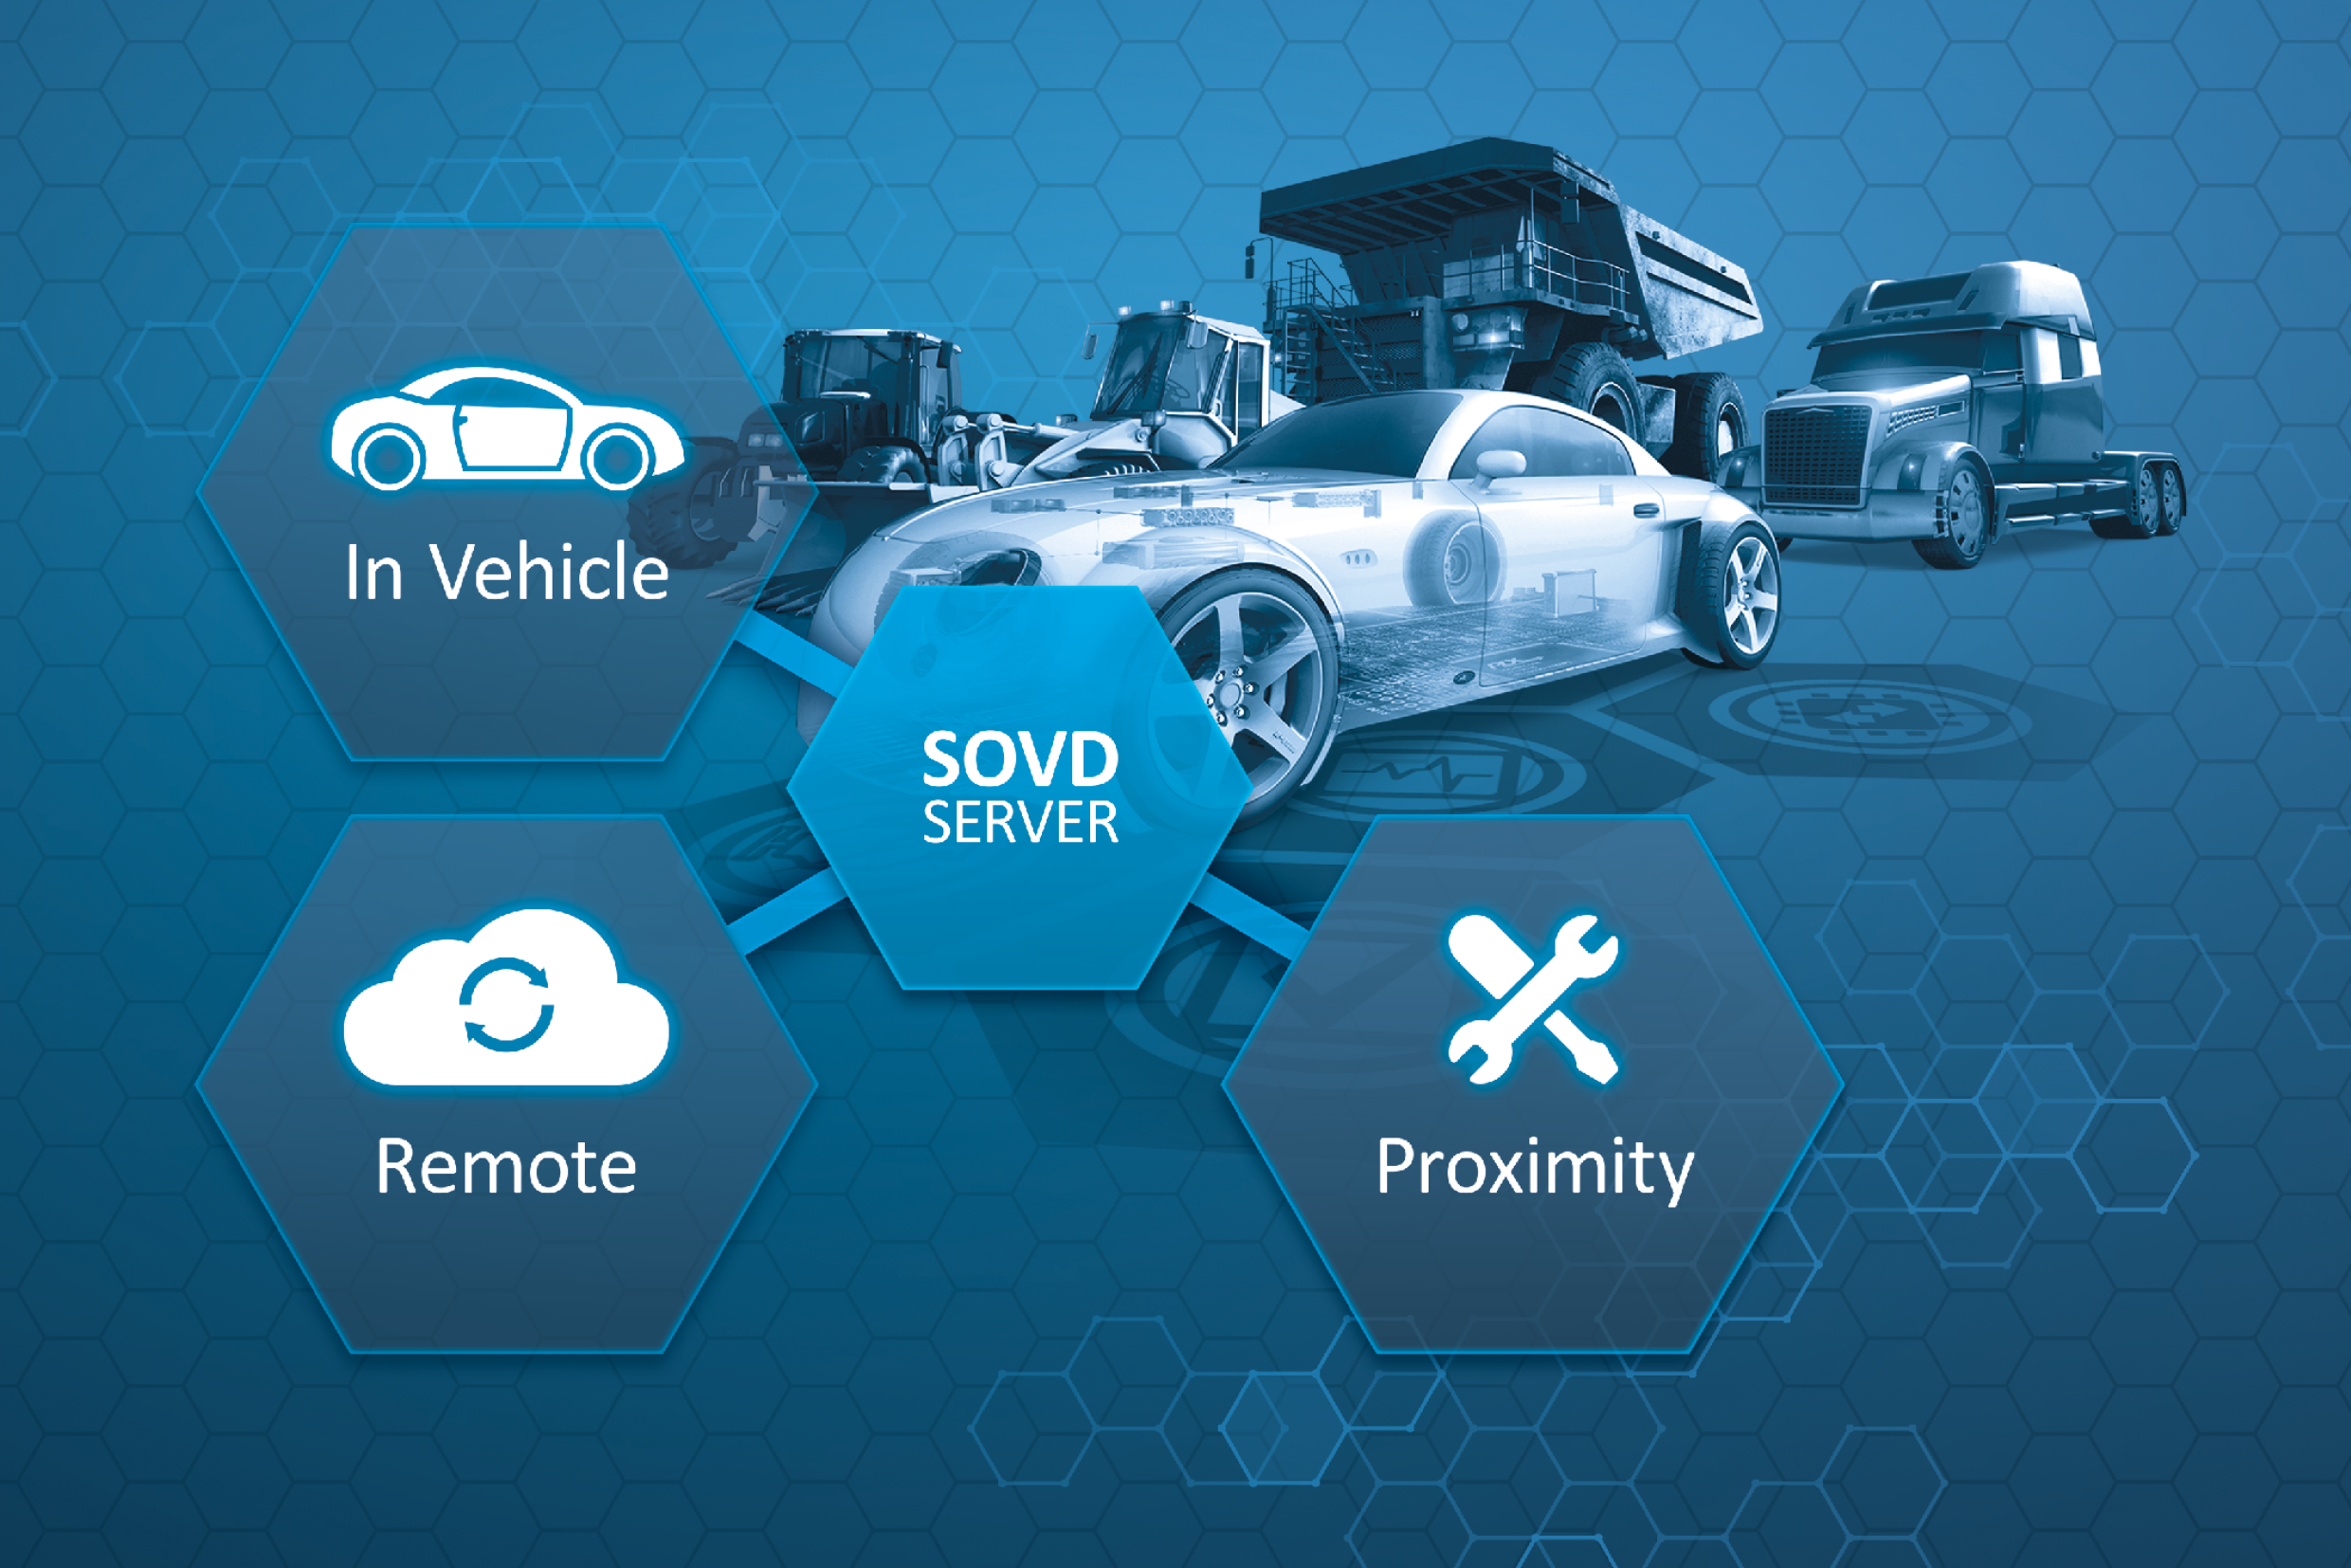 SOVD - Service Oriented Vehicle Diagnostics